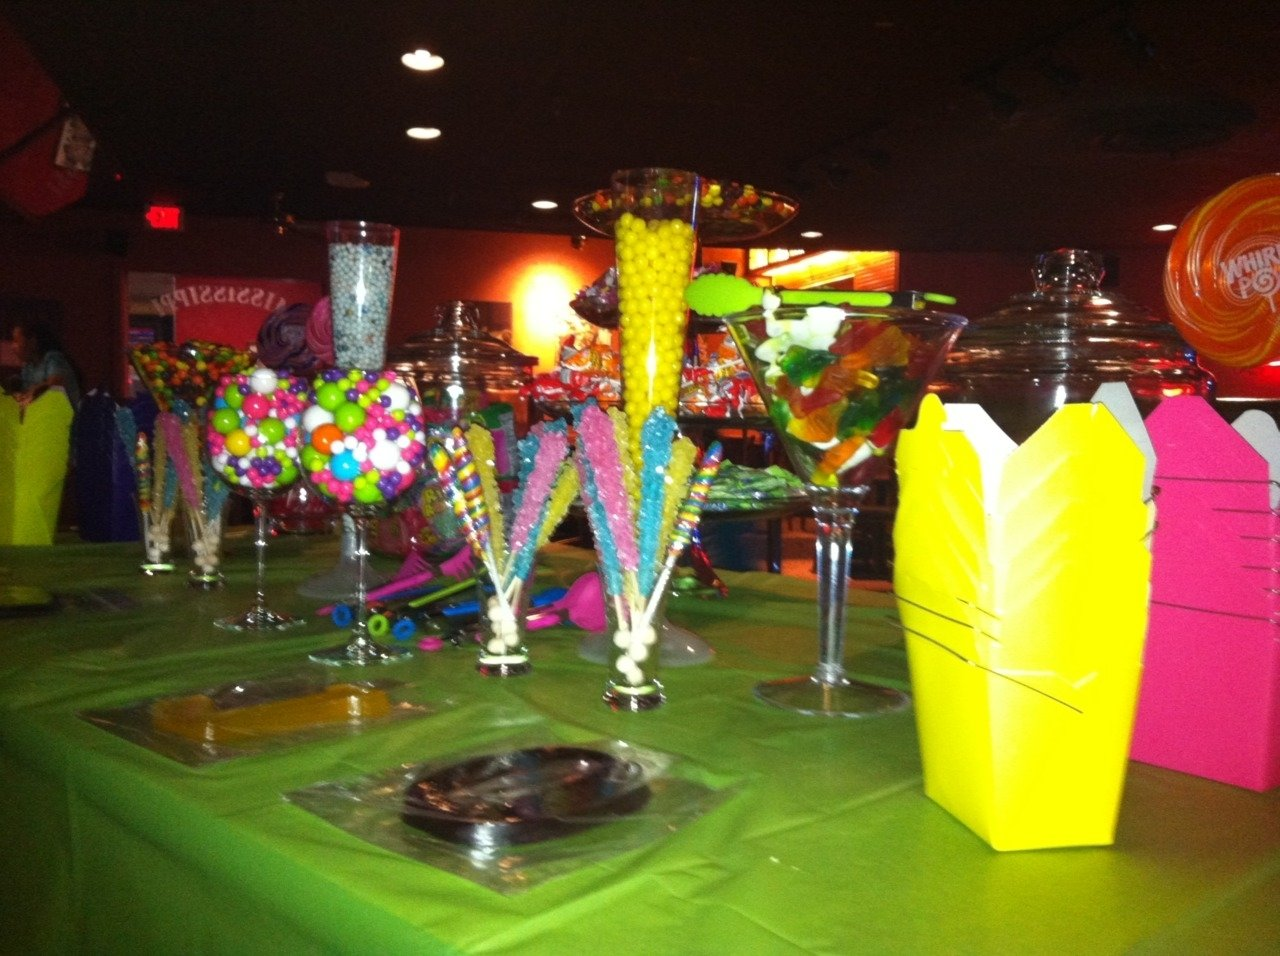 10 Nice 13 Year Old Birthday Party Ideas For Girls candy bar for 13 year old birthday party party ideas pinterest 21 2021